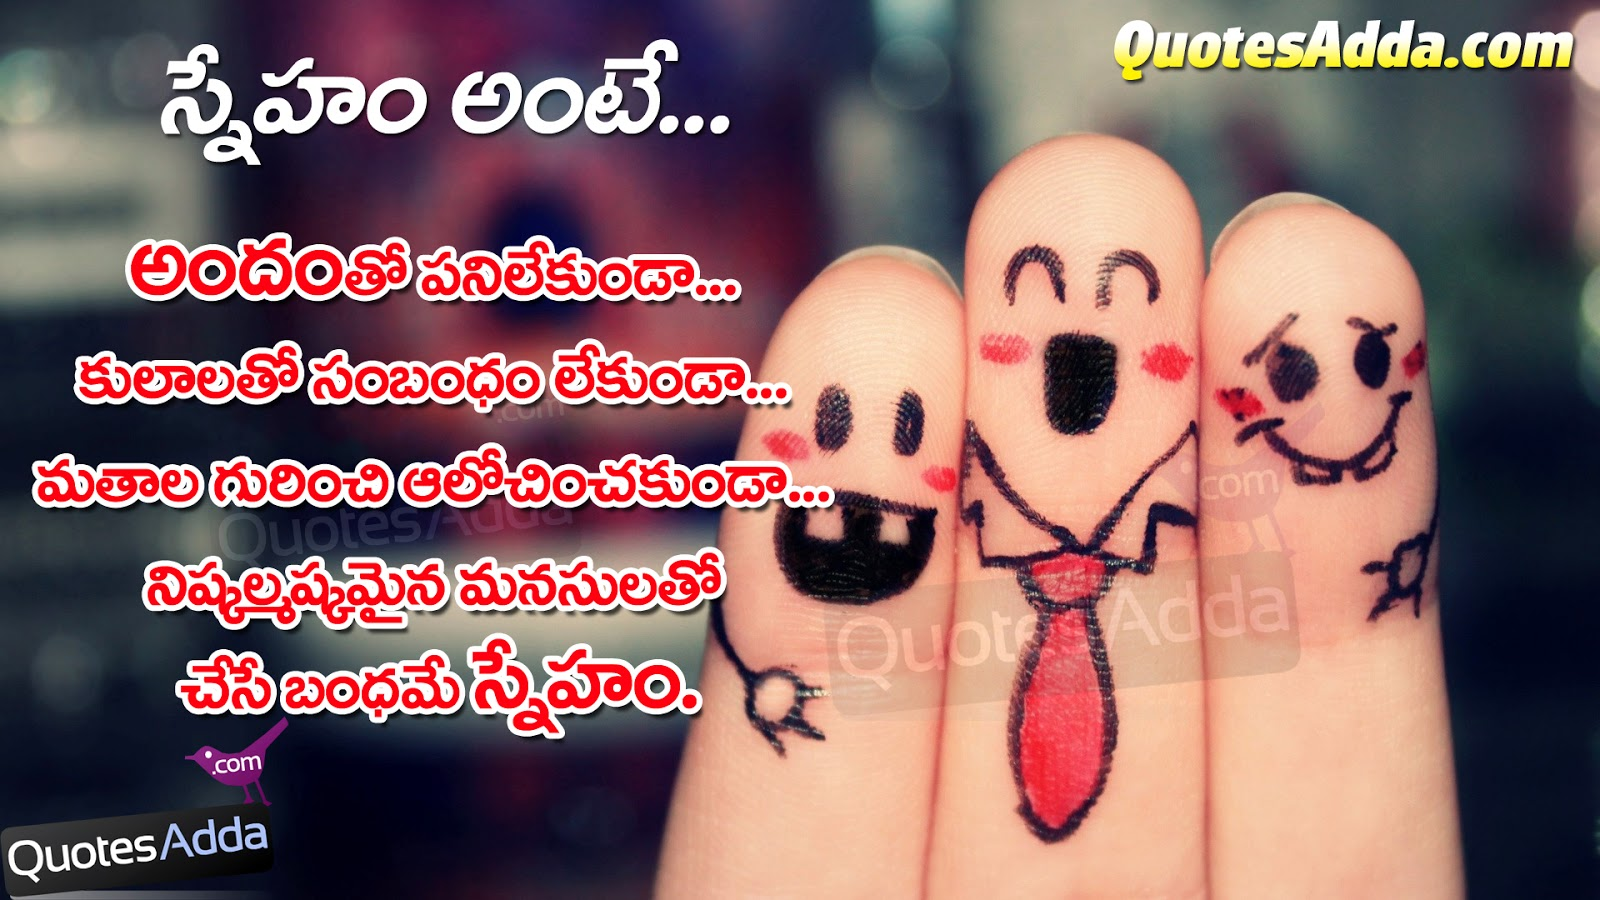 Happy Friendship Day 2017 | Friendship Day Wishes Quotes